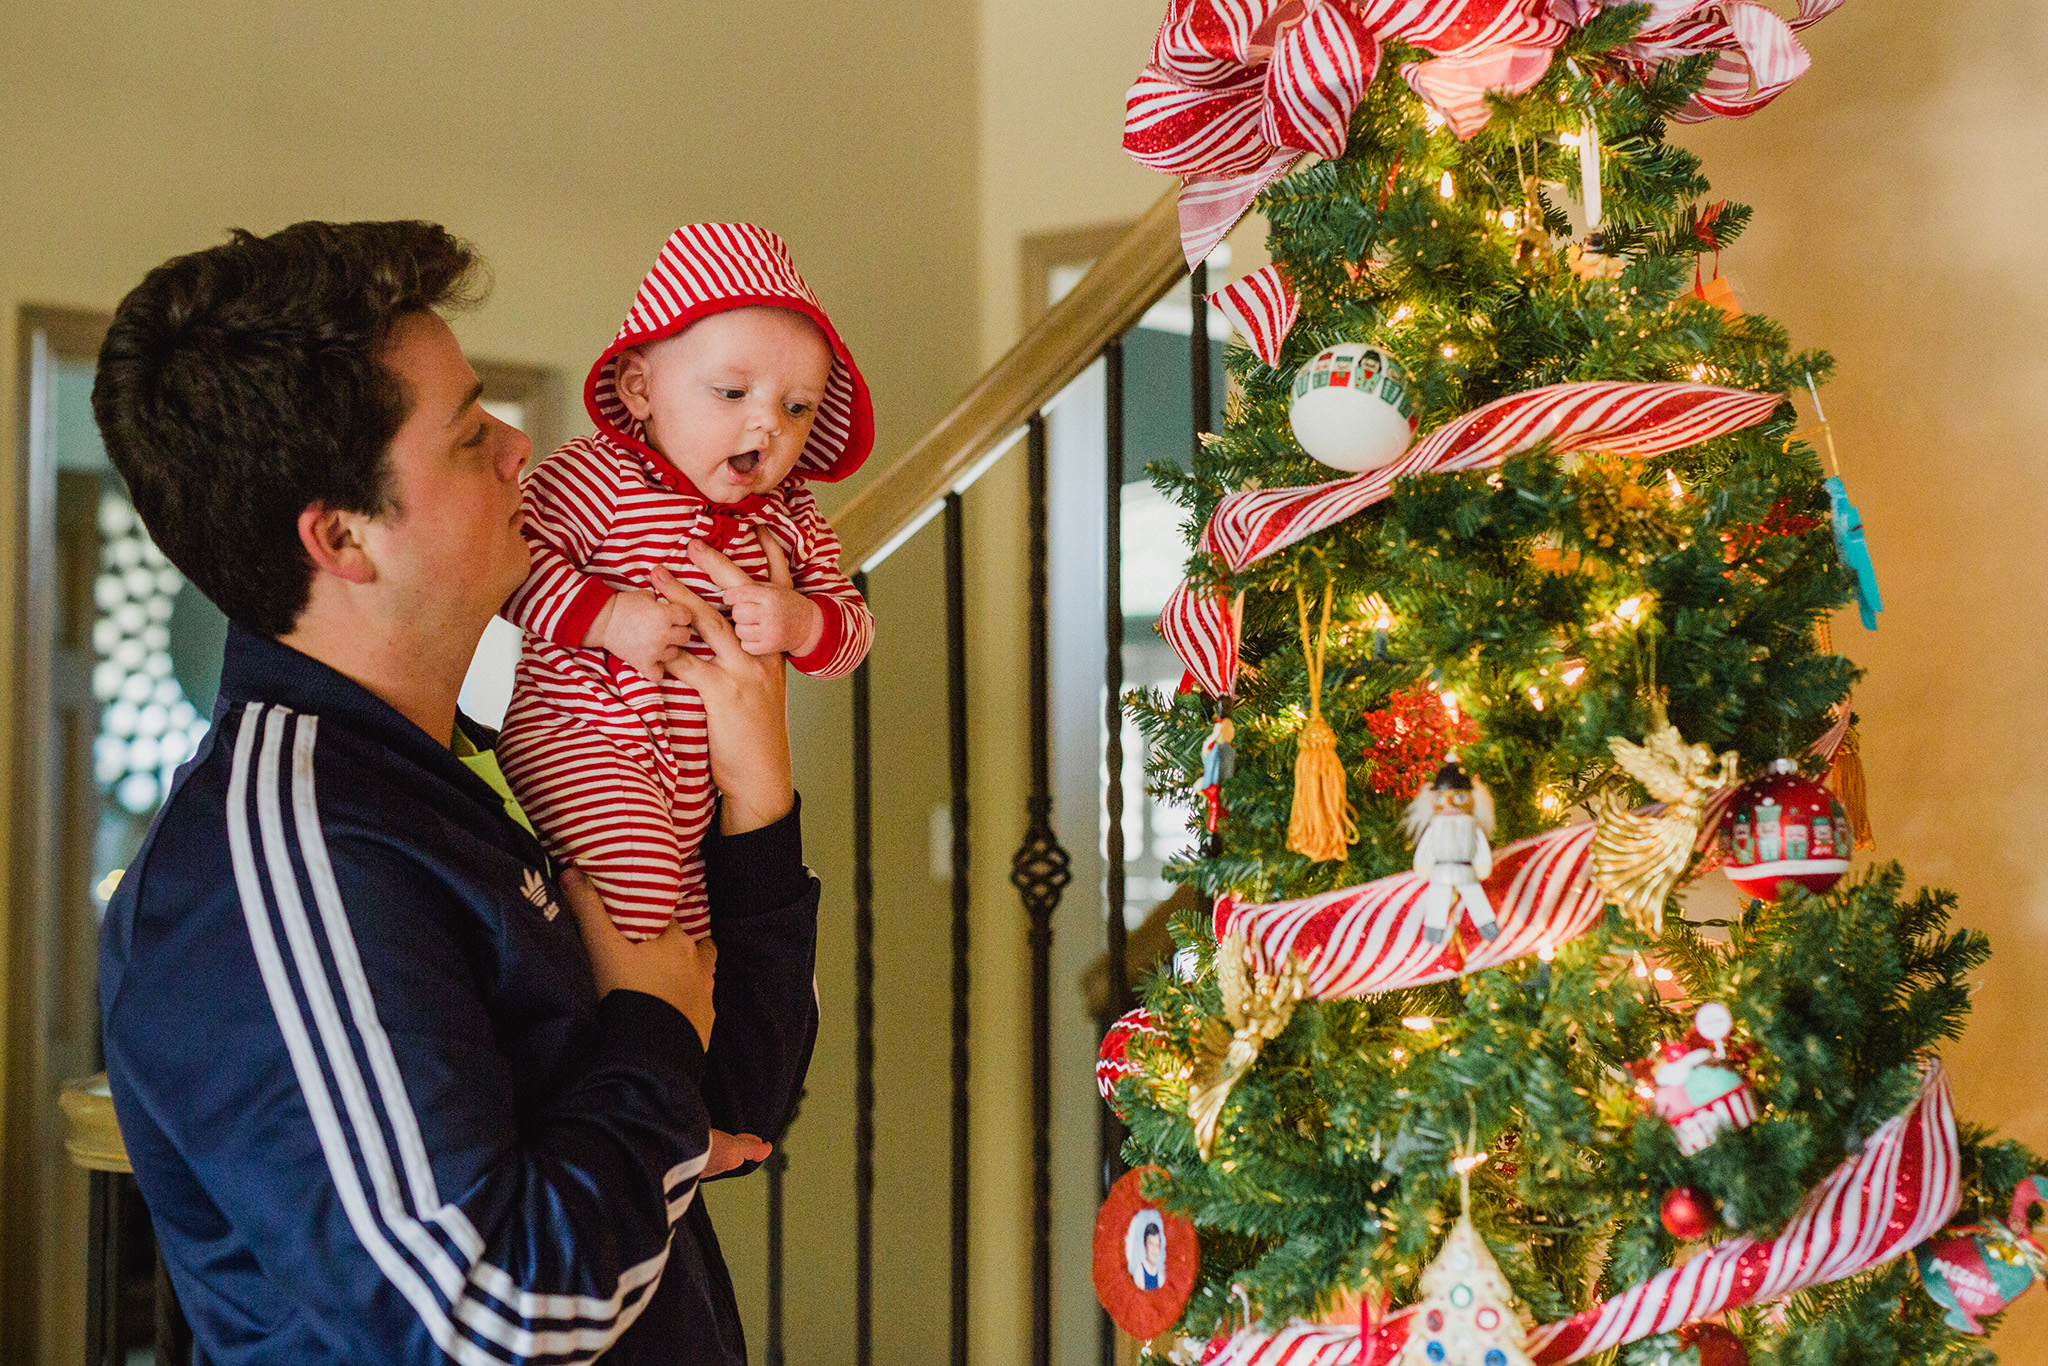 November 26: Supermanny Josh introduces Jameson to the most wonderful time of the year.